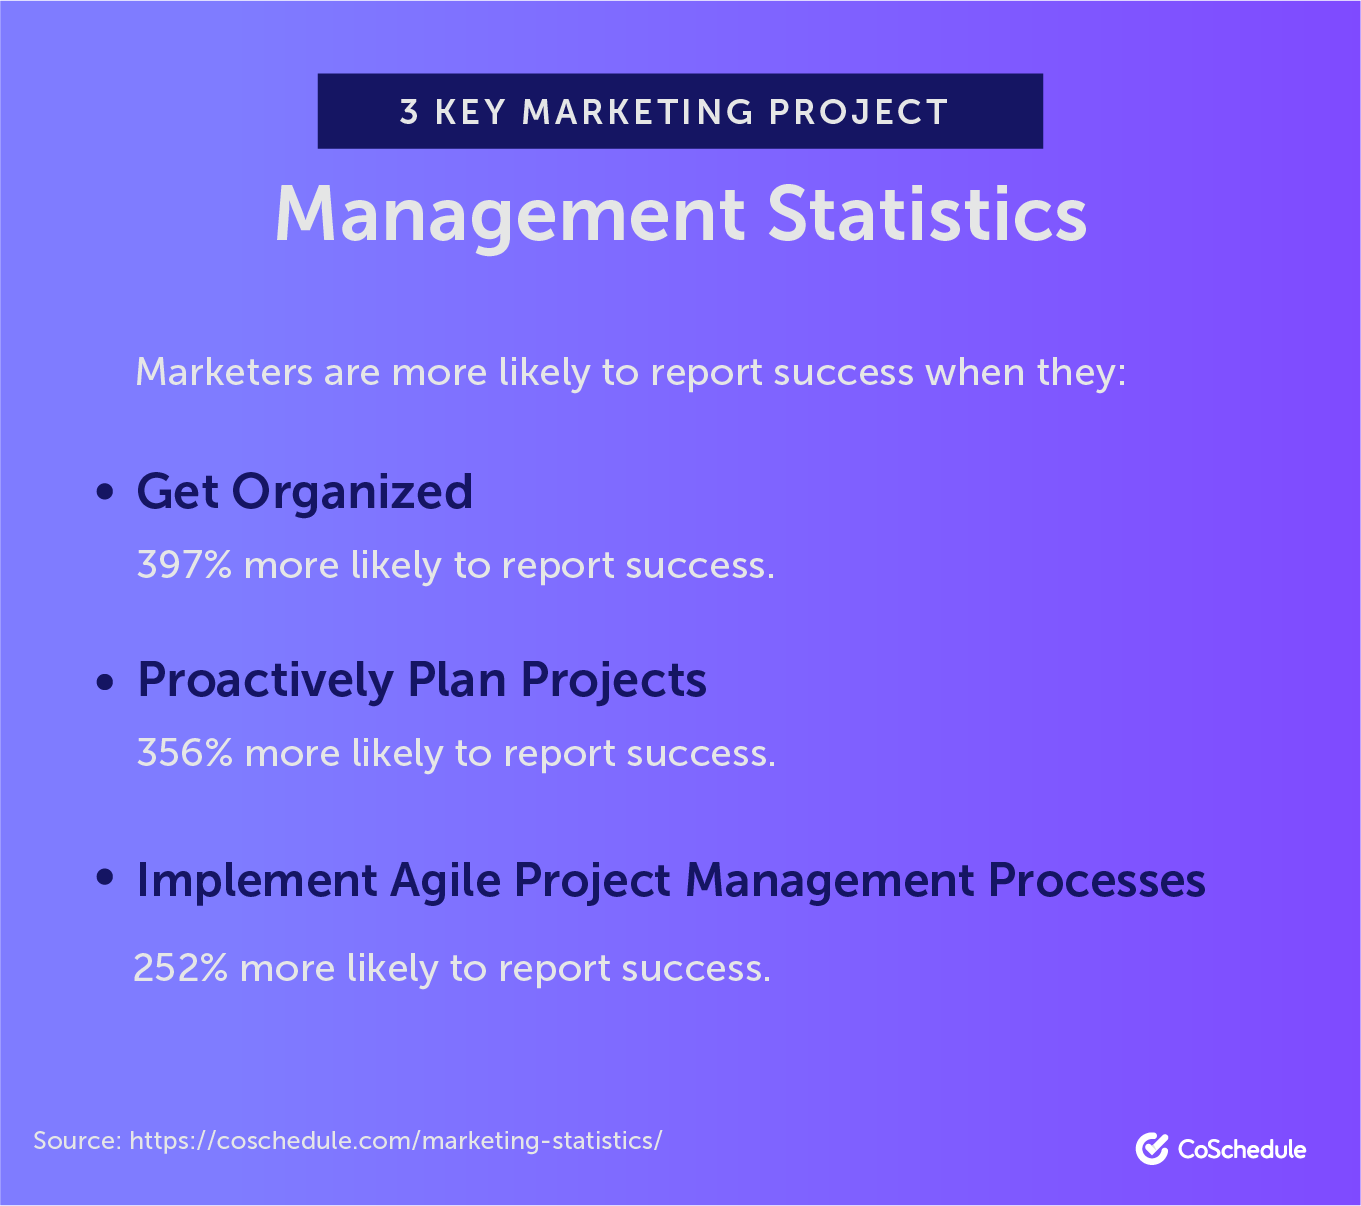 3 Key Marketing Project Management Software Statistics